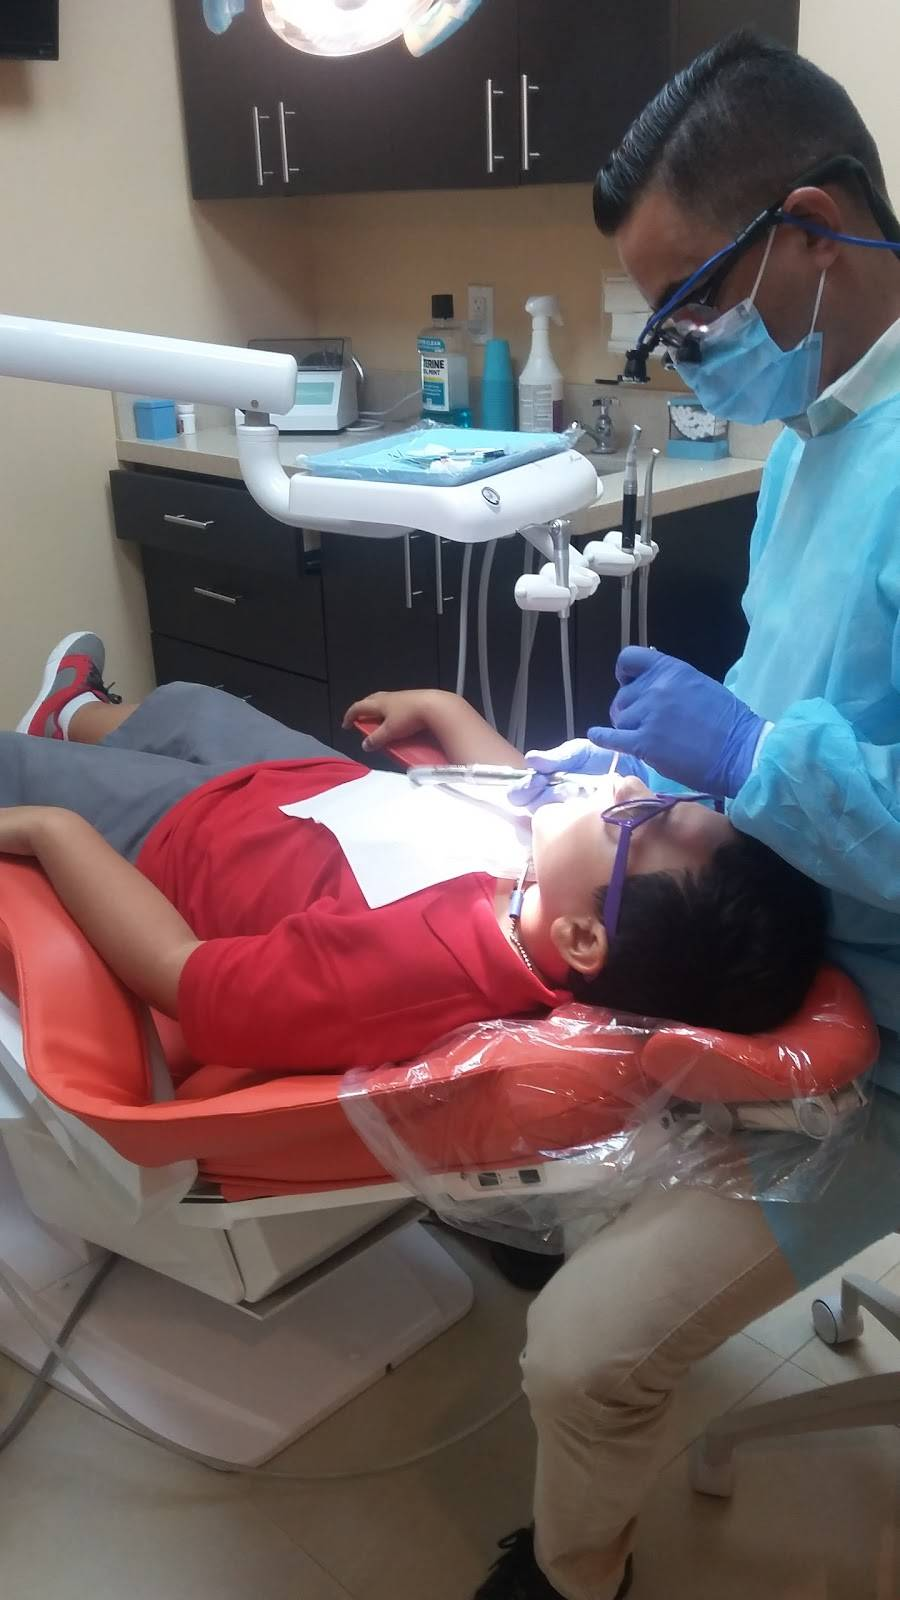 RGD Dental Care - dentist  | Photo 8 of 8 | Address: 11870 Hialeah Gardens Blvd #129a, Hialeah Gardens, FL 33018, USA | Phone: (786) 536-7537